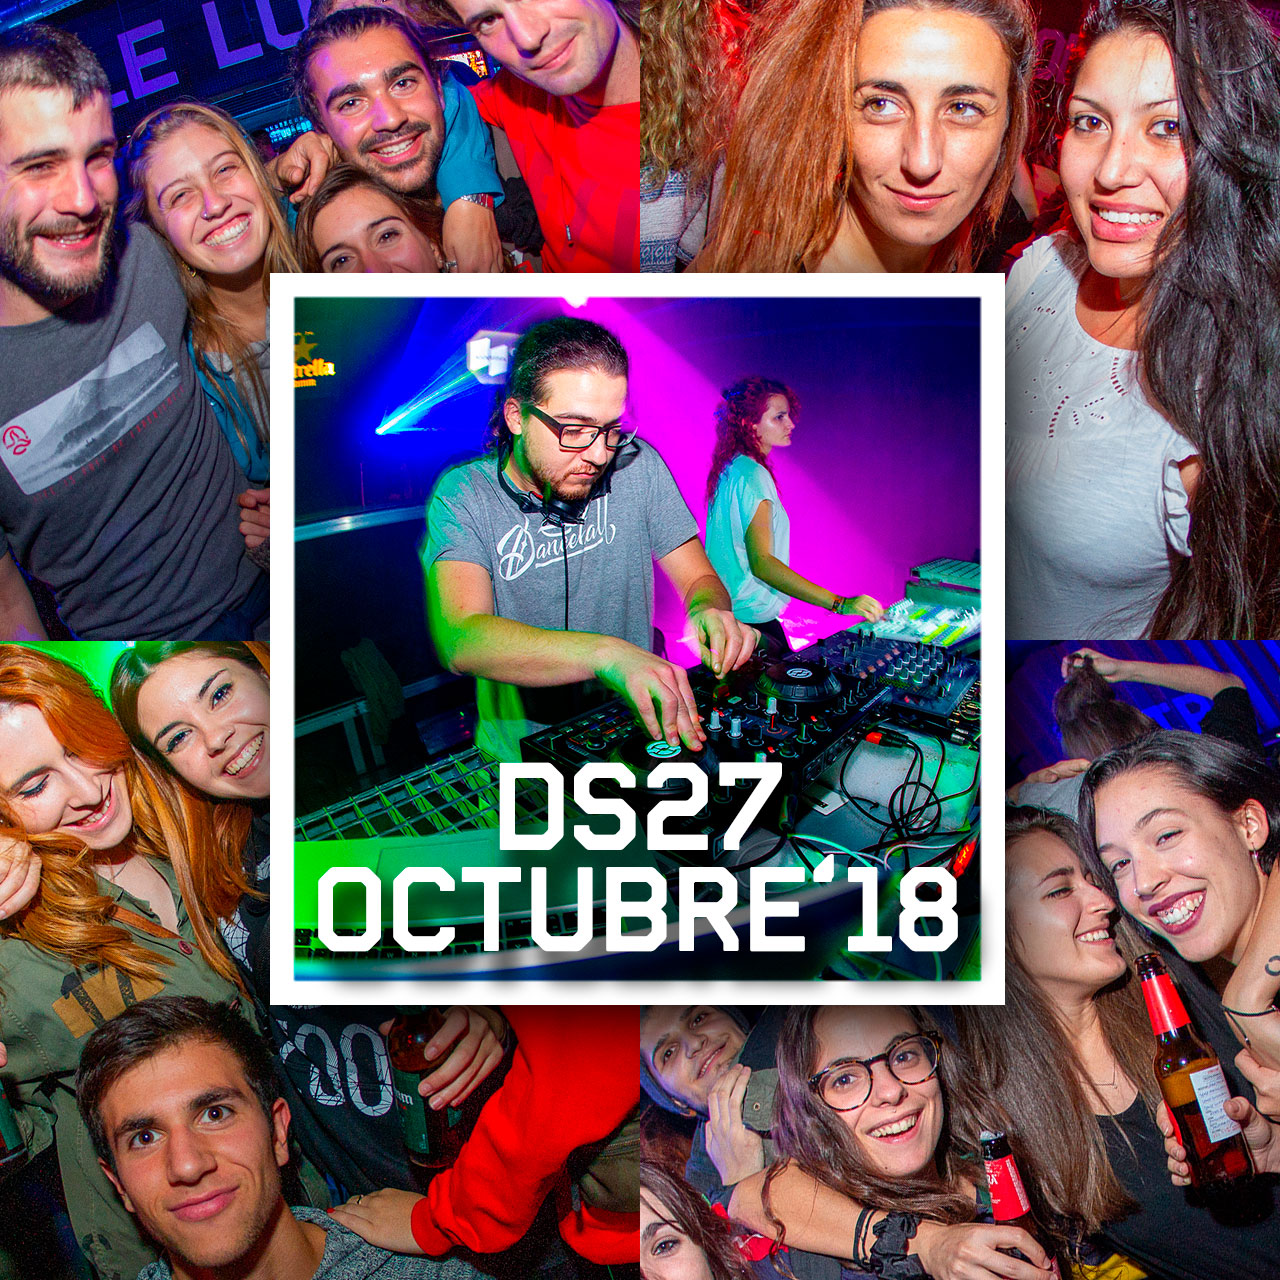 DS27 OCT'18 // STROIKA SESSIONS